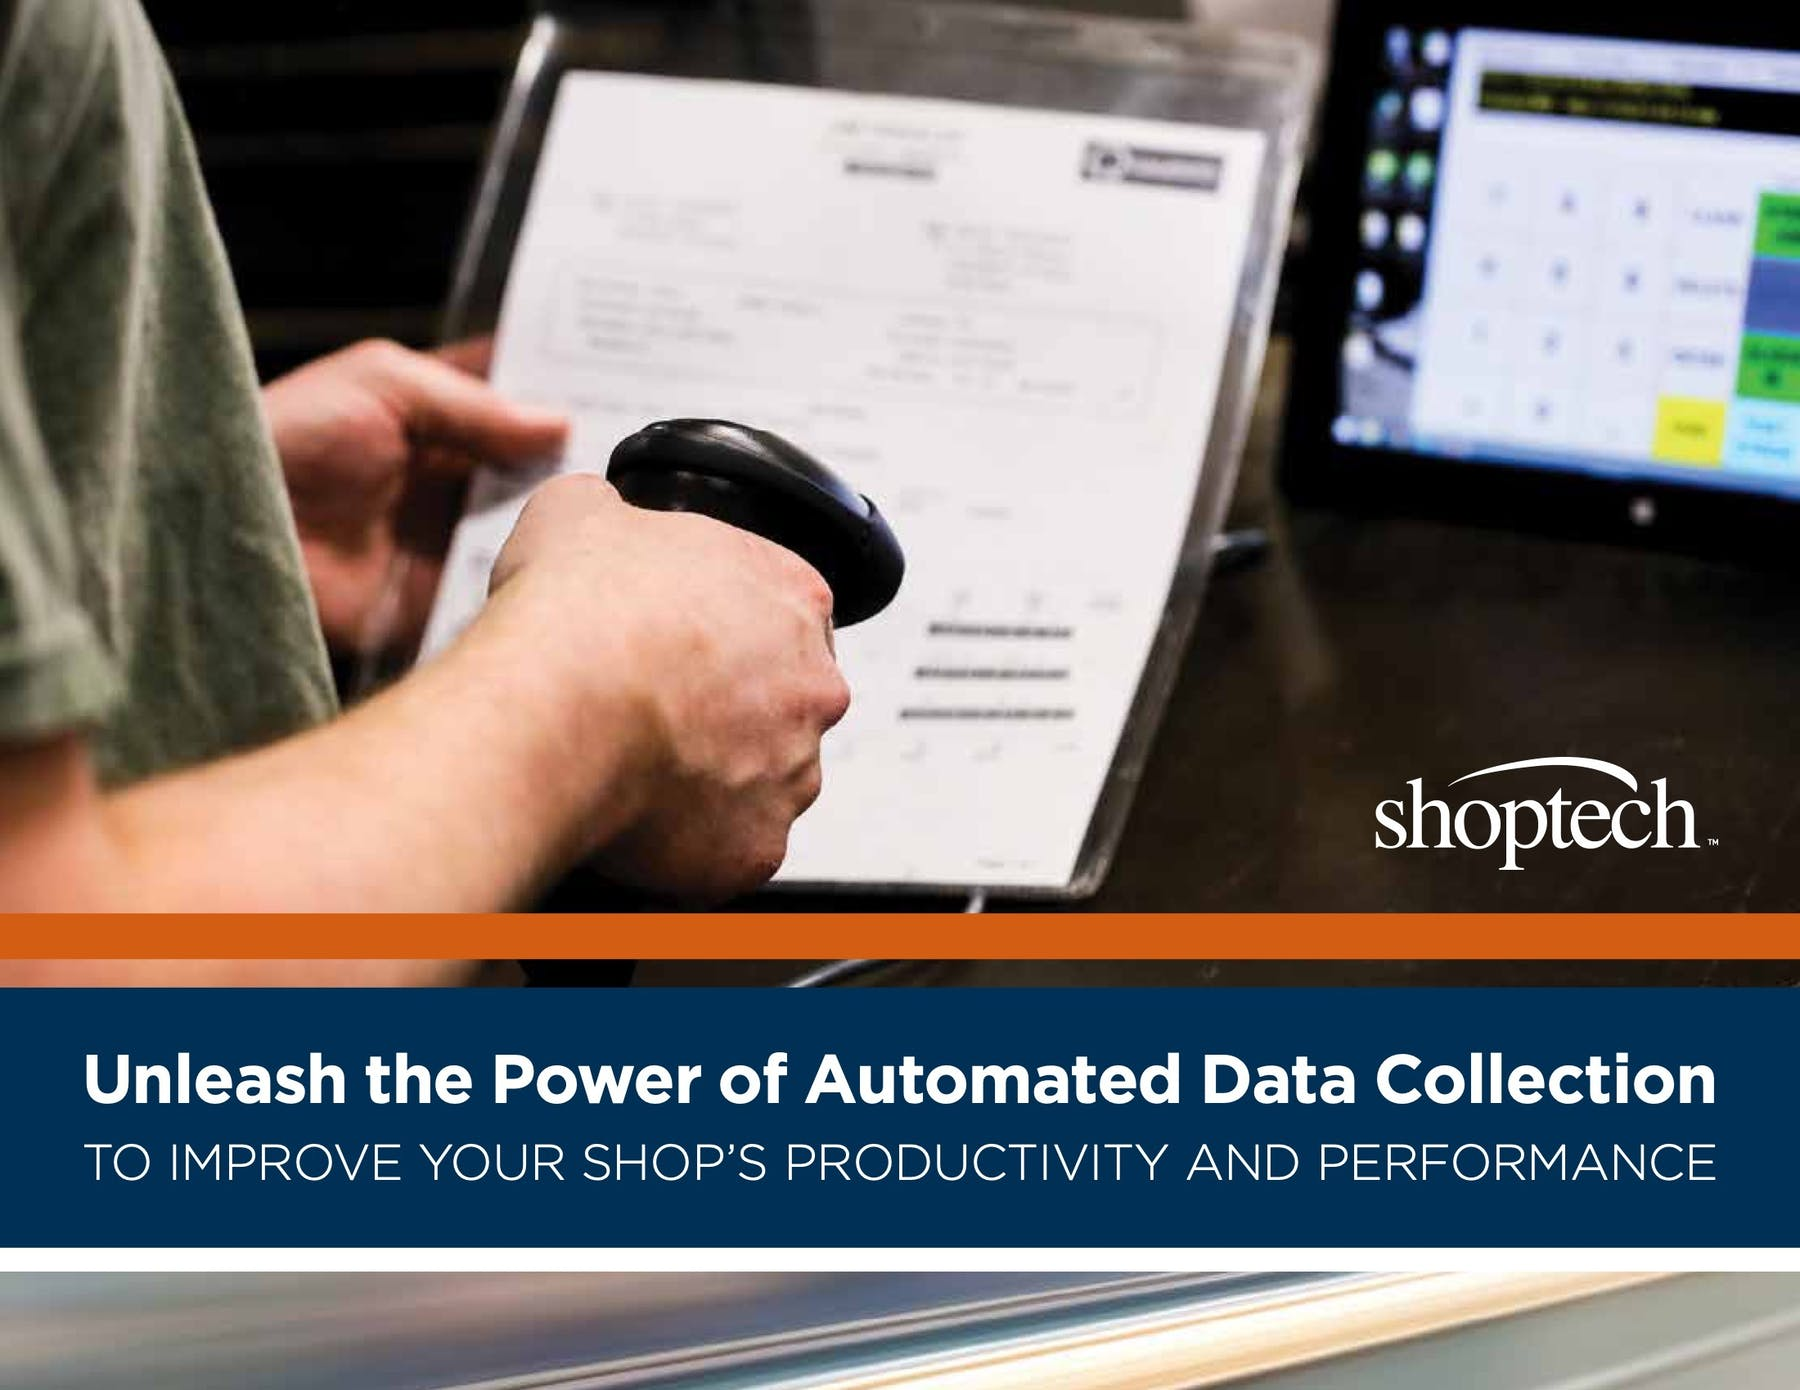 E2 Shop System White Paper - Unleash the Power of Automated Data Collection